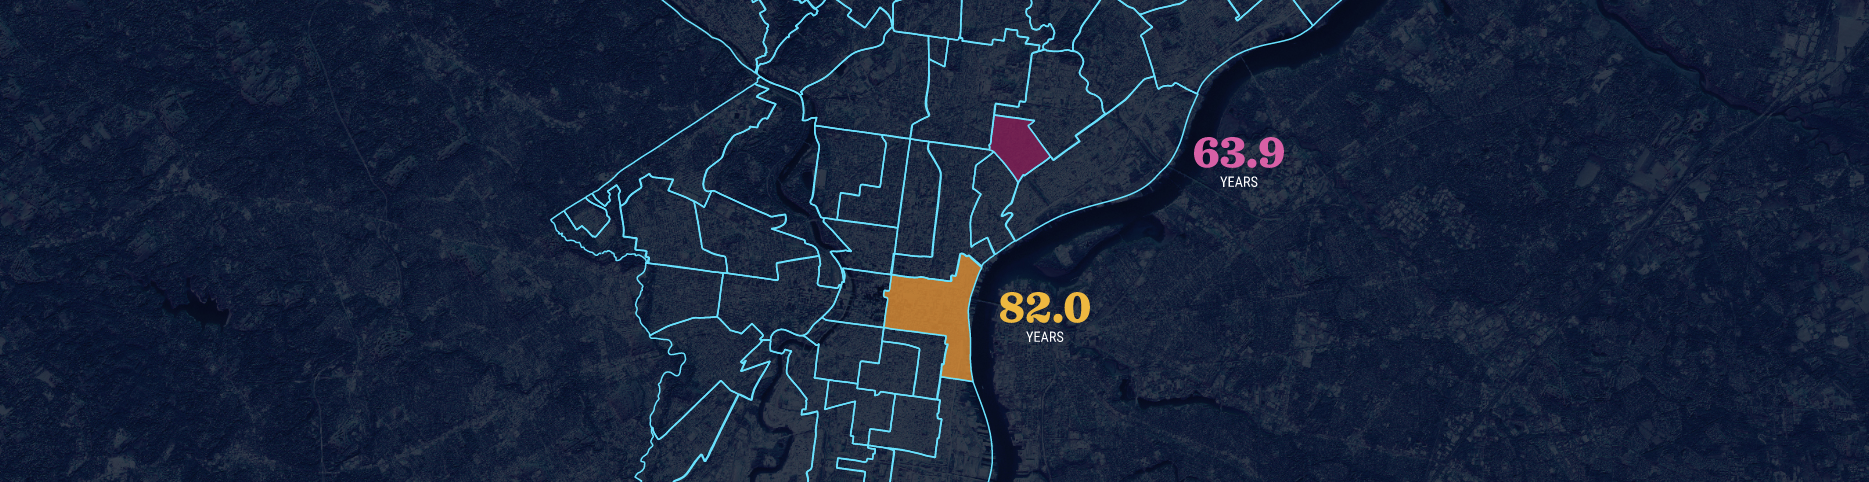 Philly Health Rankings Homepage Map